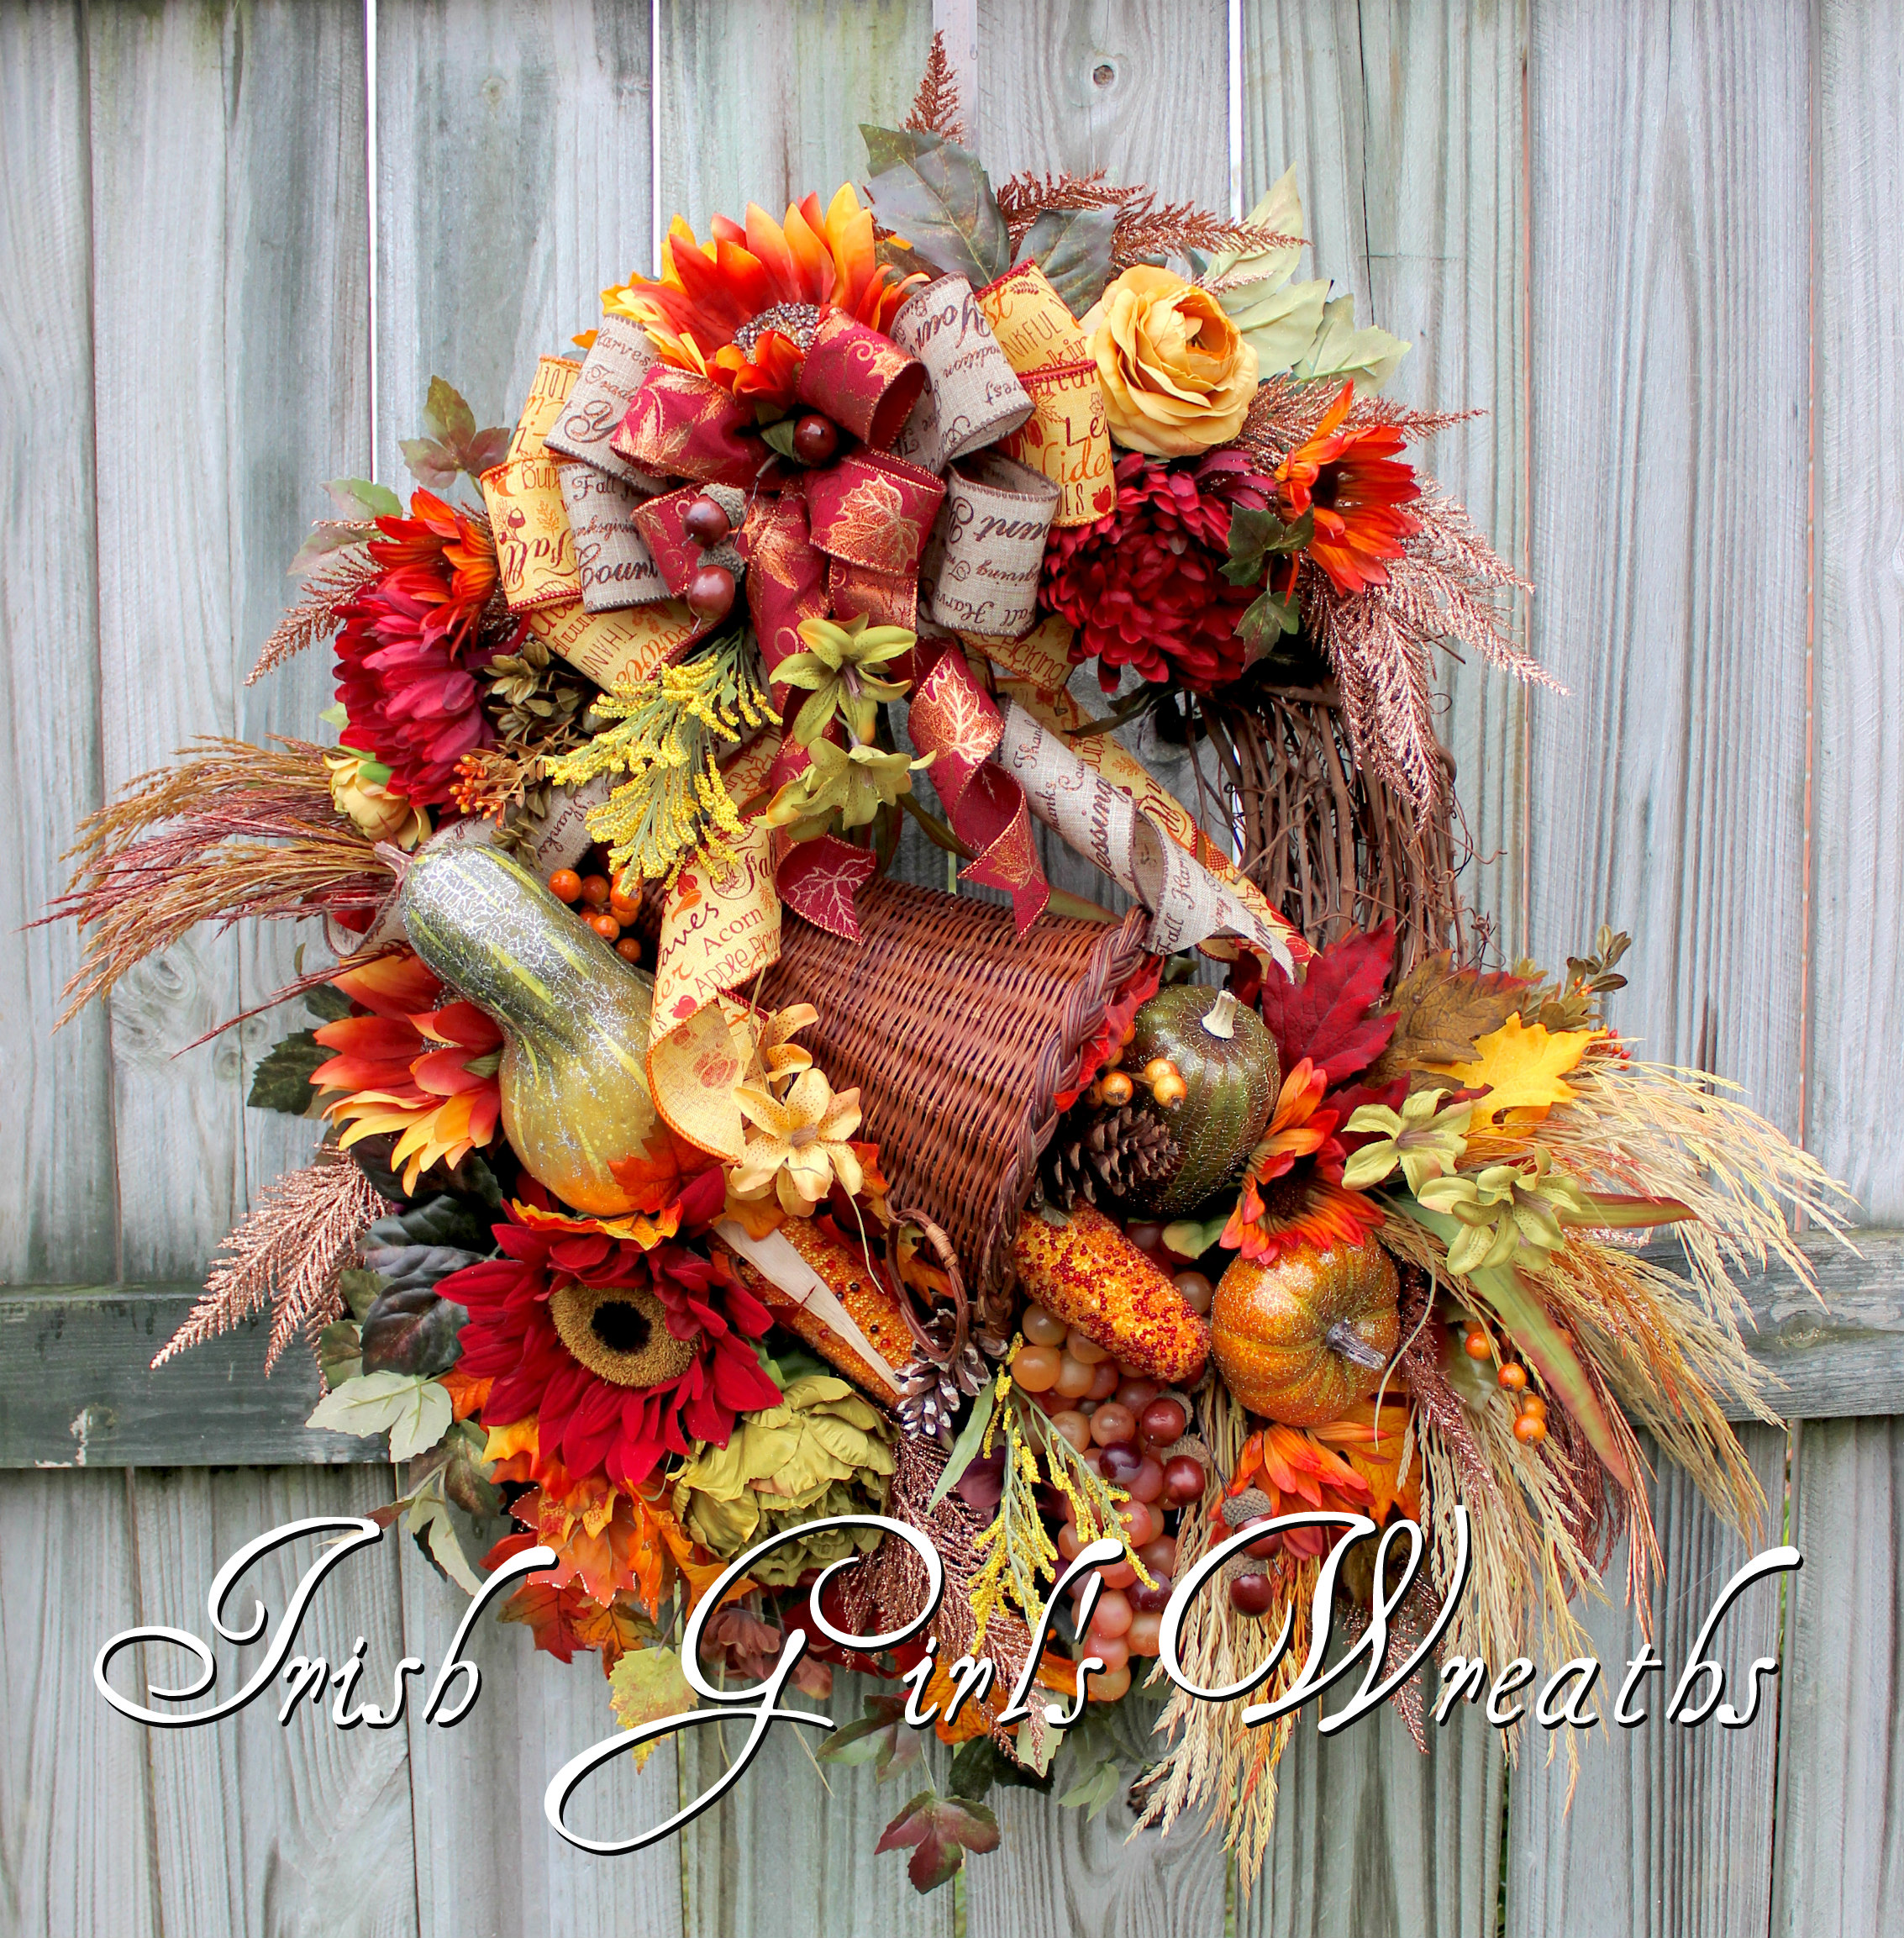 XXL Deluxe Copper Harvest Cornucopia Floral Wreath, Large Autumn Thanksgiving Wreath